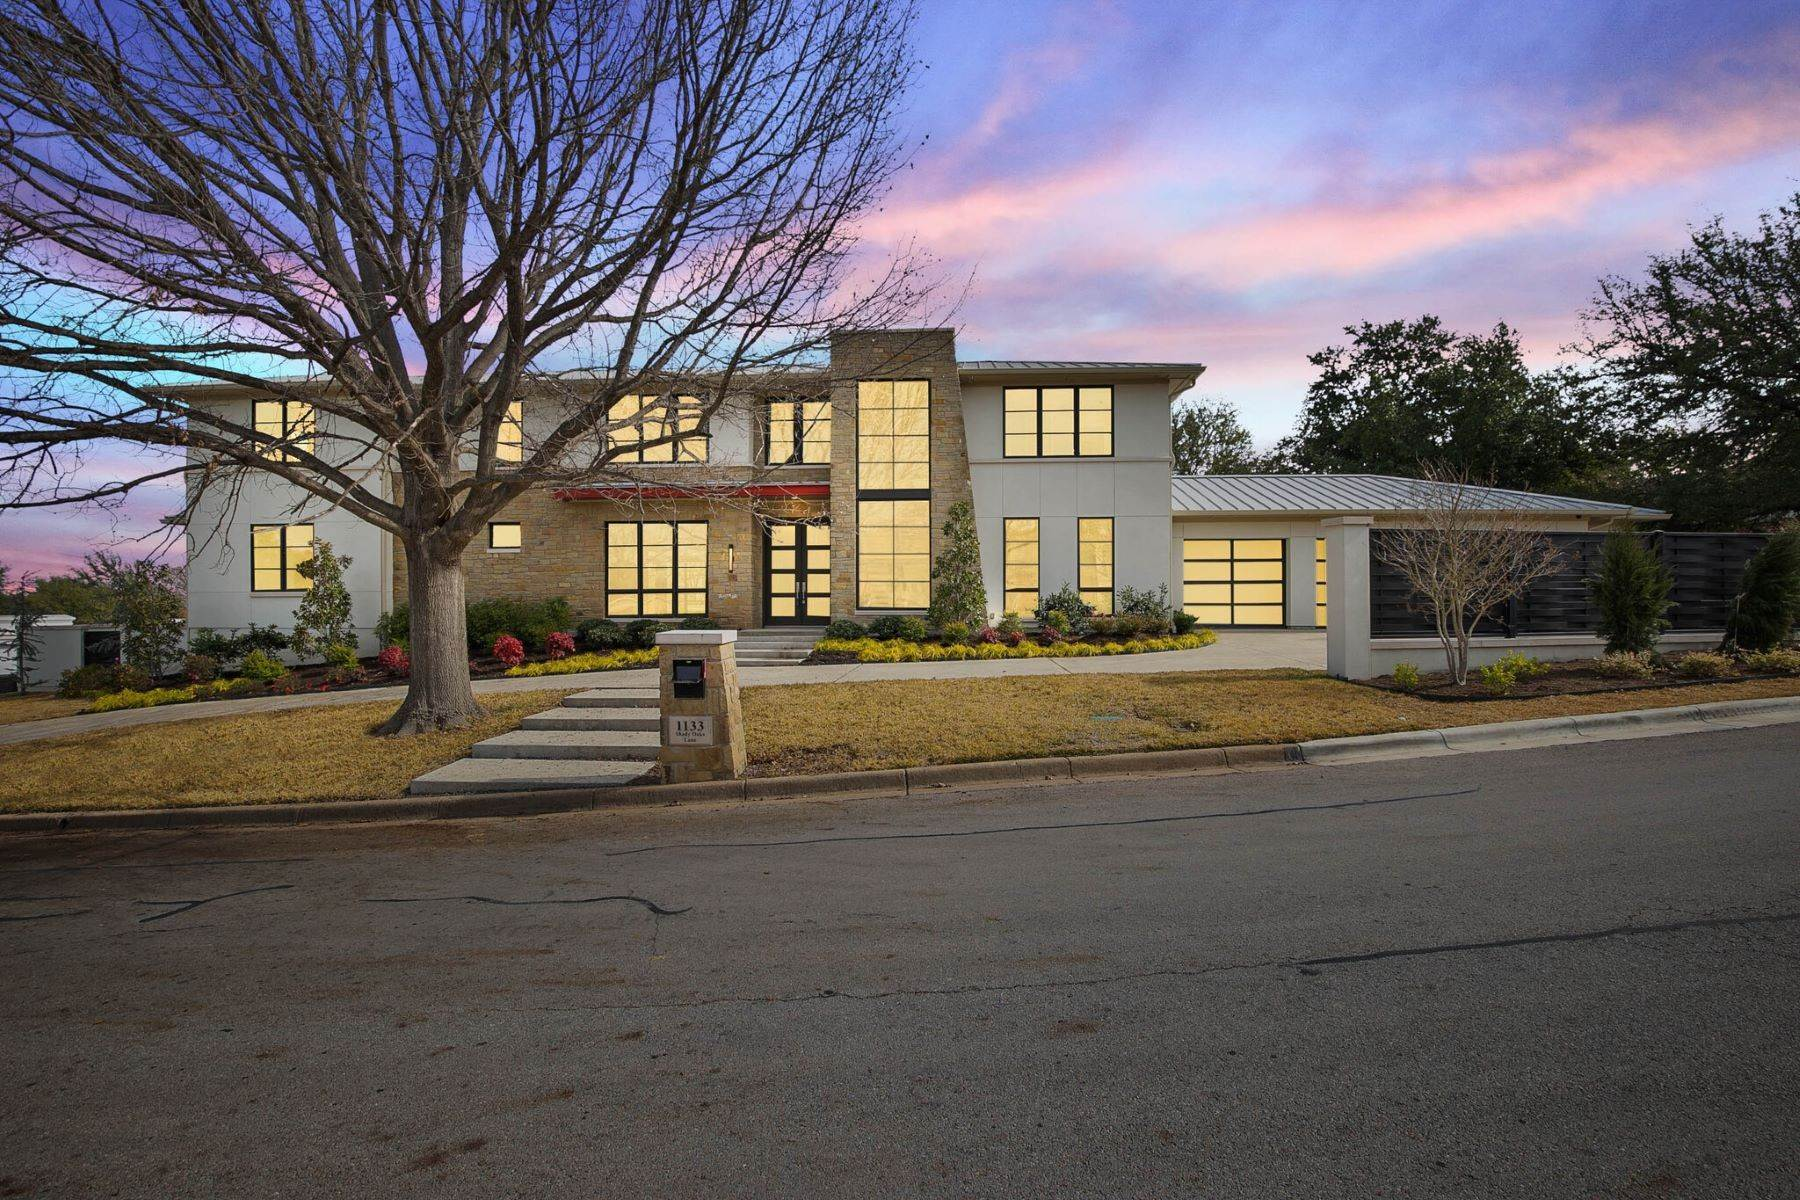 Single Family Homes for Sale at 1133 Shady Oaks Lane, Westover Hills, TX, 76107 1133 Shady Oaks Lane Westover Hills, Texas 76107 United States